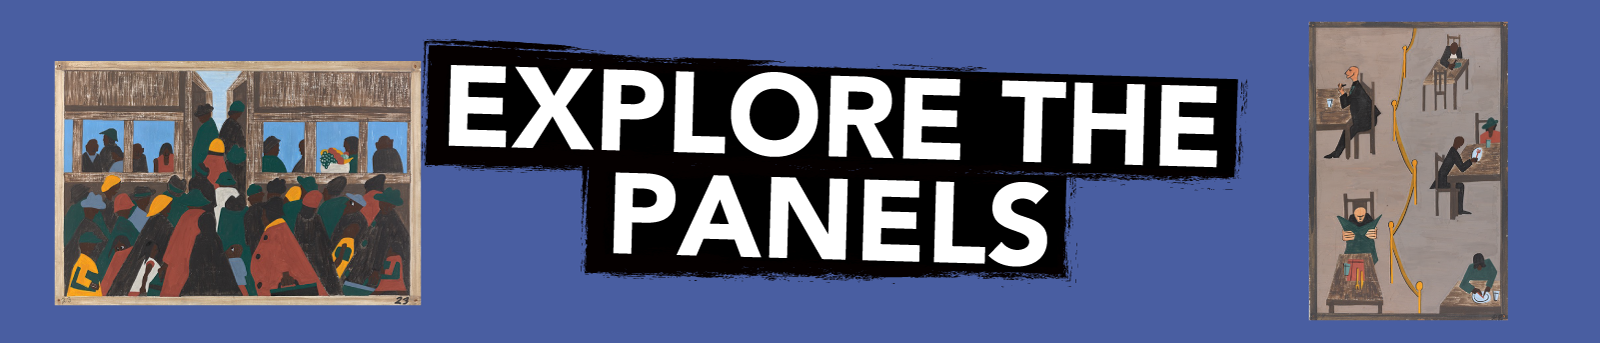 Explore the Panels